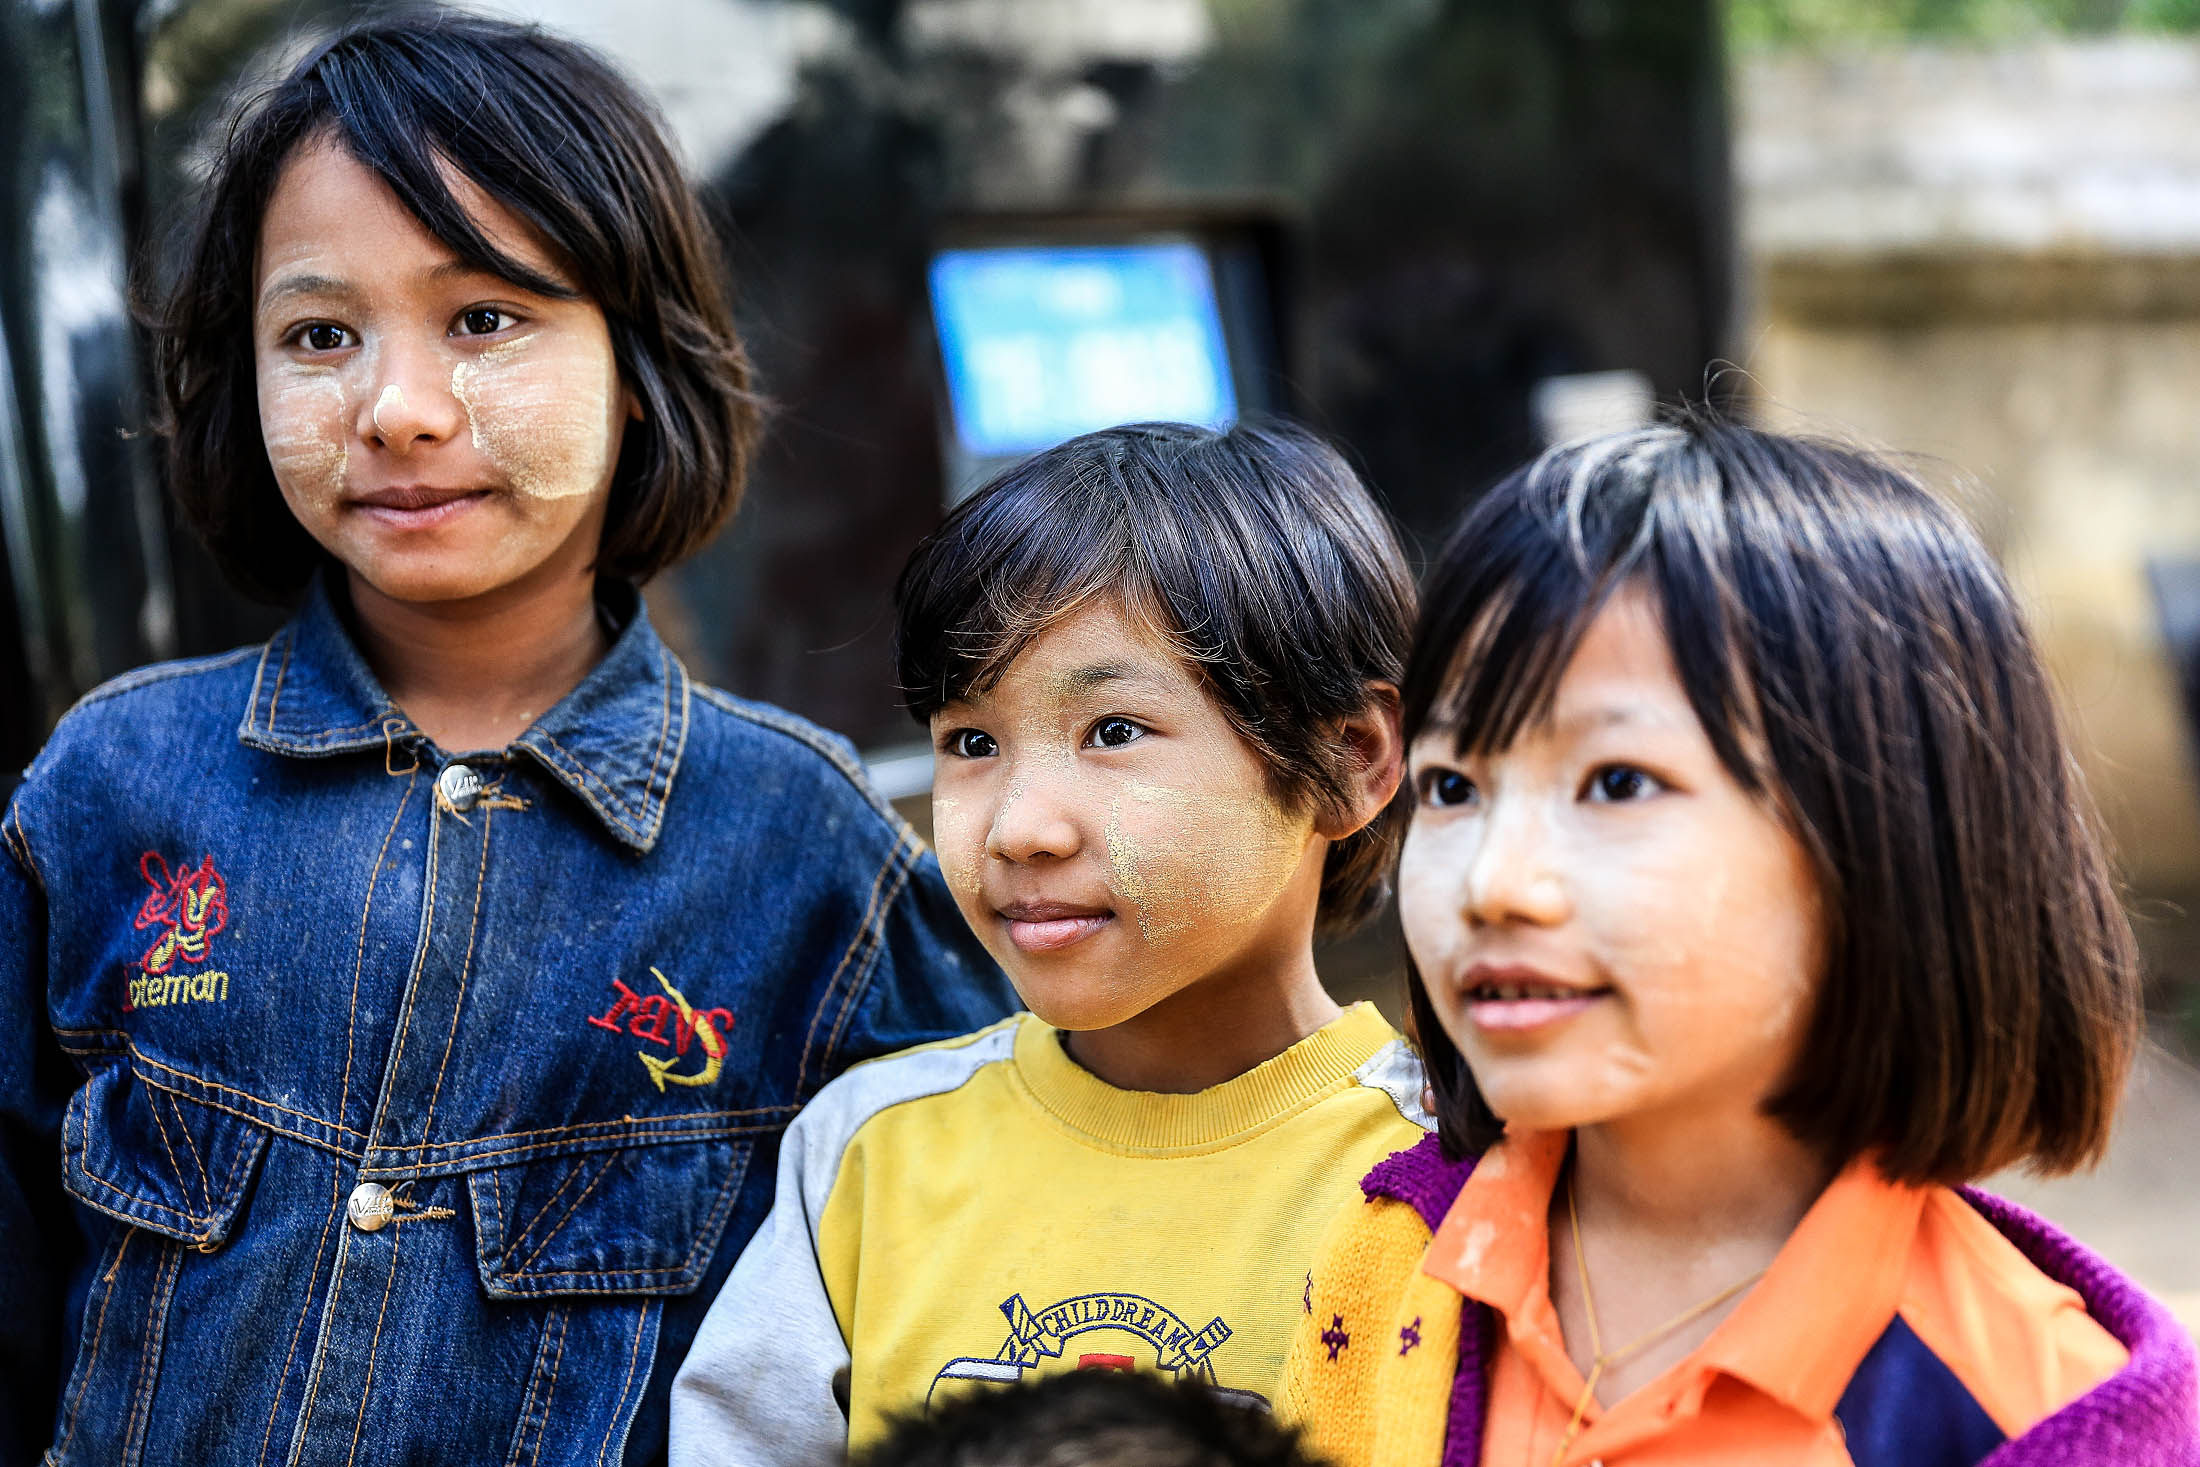 Kids of Myanmar